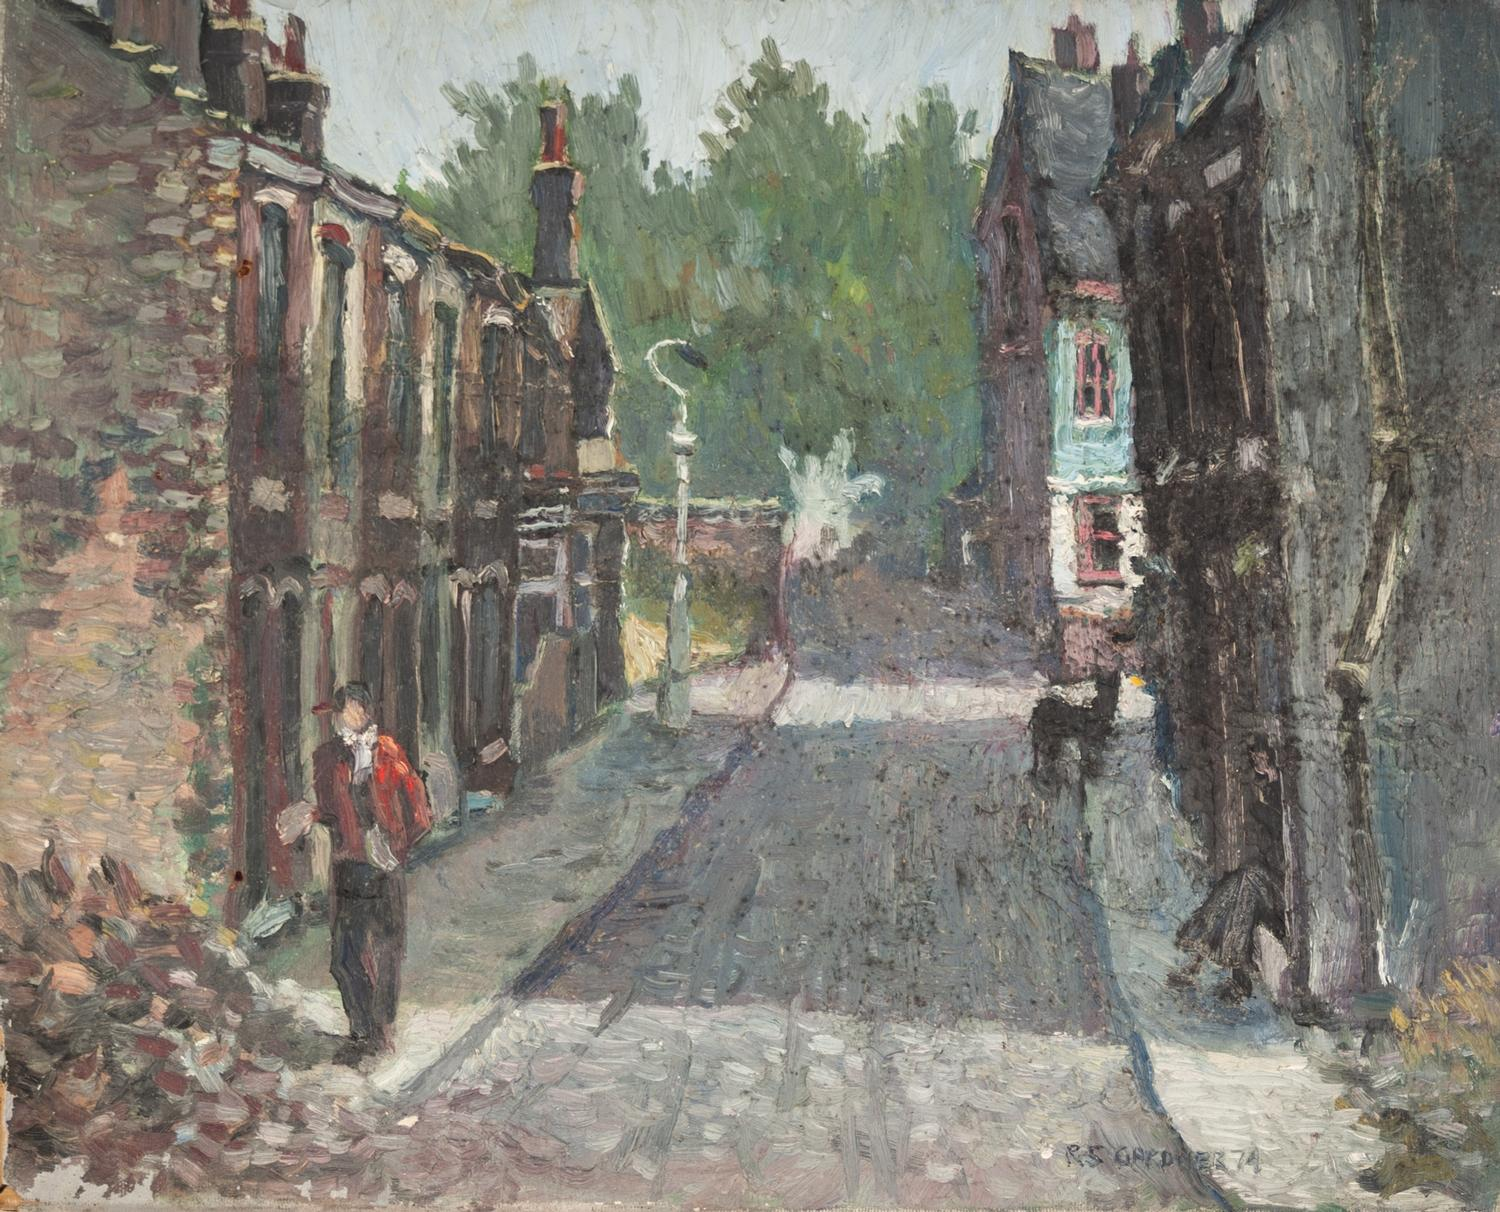 Lot 43 - REG GARDNER (b.1948) OIL ON CANVAS Street scene with figure and a dog Signed and dated (19)74 16?